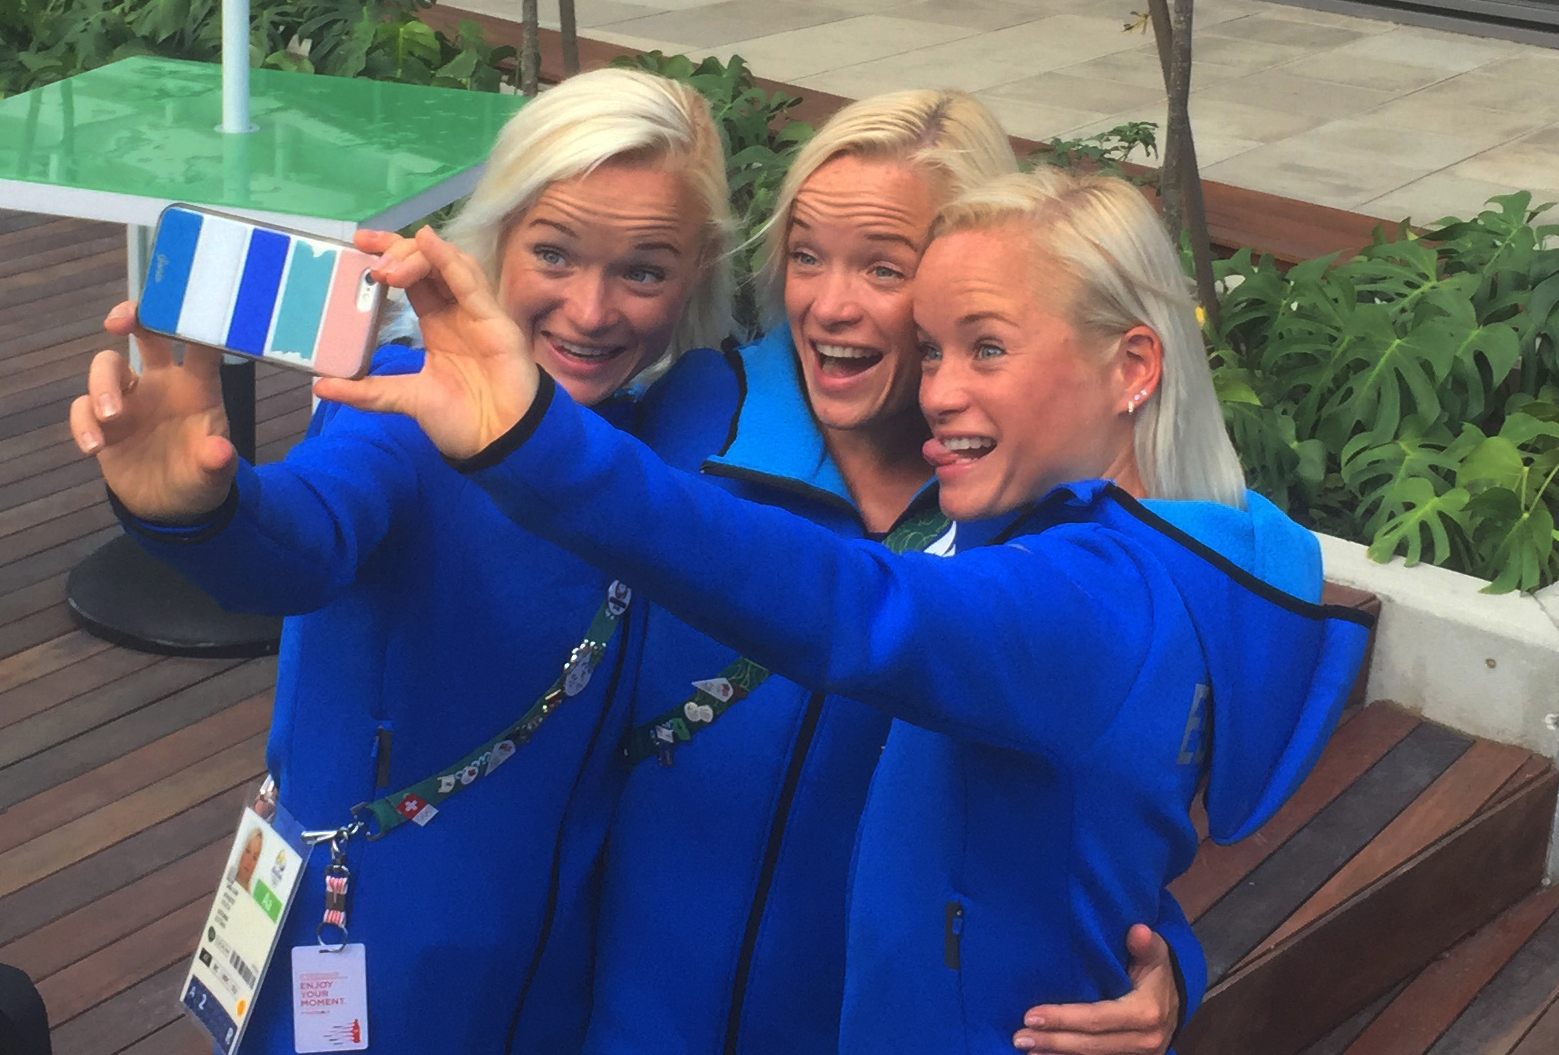 In this Friday, Aug. 12, 2016 photo, Estonian triplets, from left, Leila, Liina and Lily Luik take a selfie outside the Main Press Center at the 2016 Summer Olympics in Rio de Janeiro, Brazil. Olympic spectators face the challenge Sunday, Aug. 14 of tryin